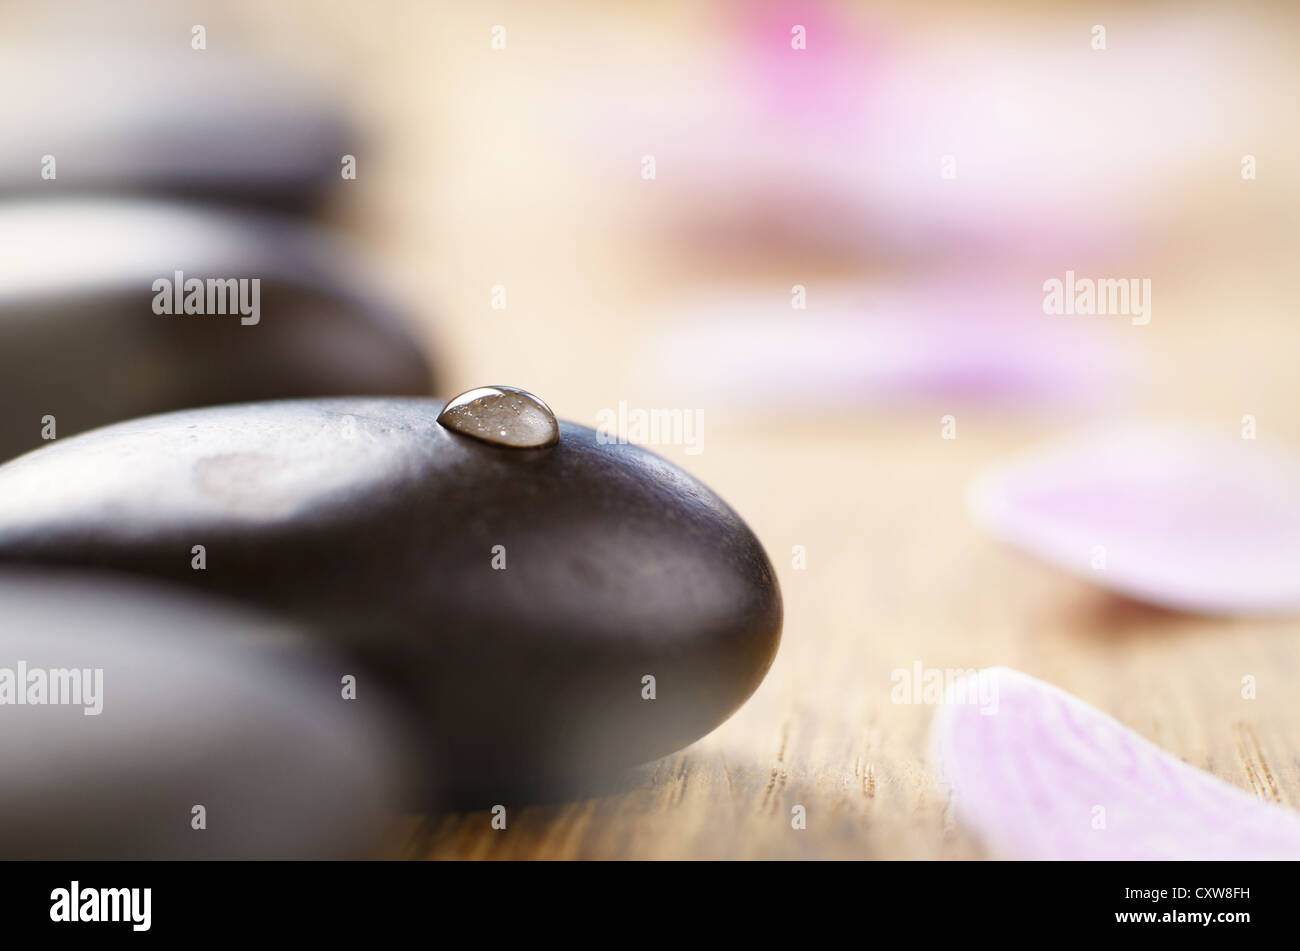 Spa stones set on the wooden table - Stock Image